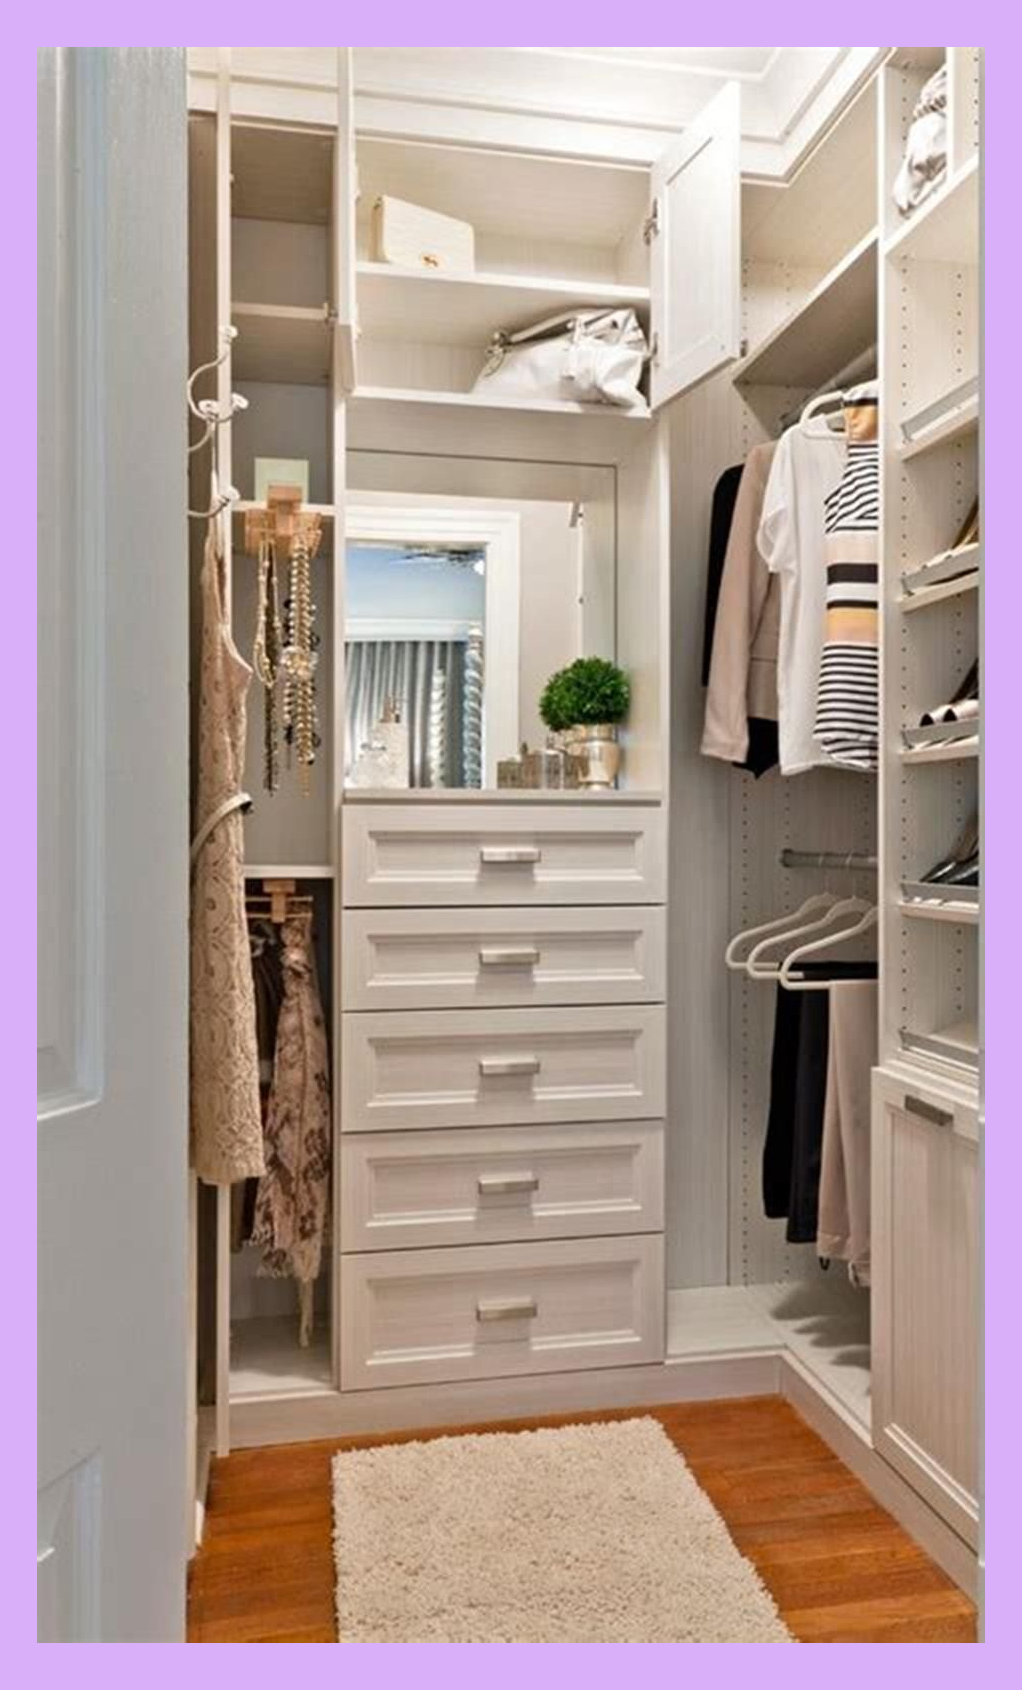 Pin On Closet Remodel Ideas